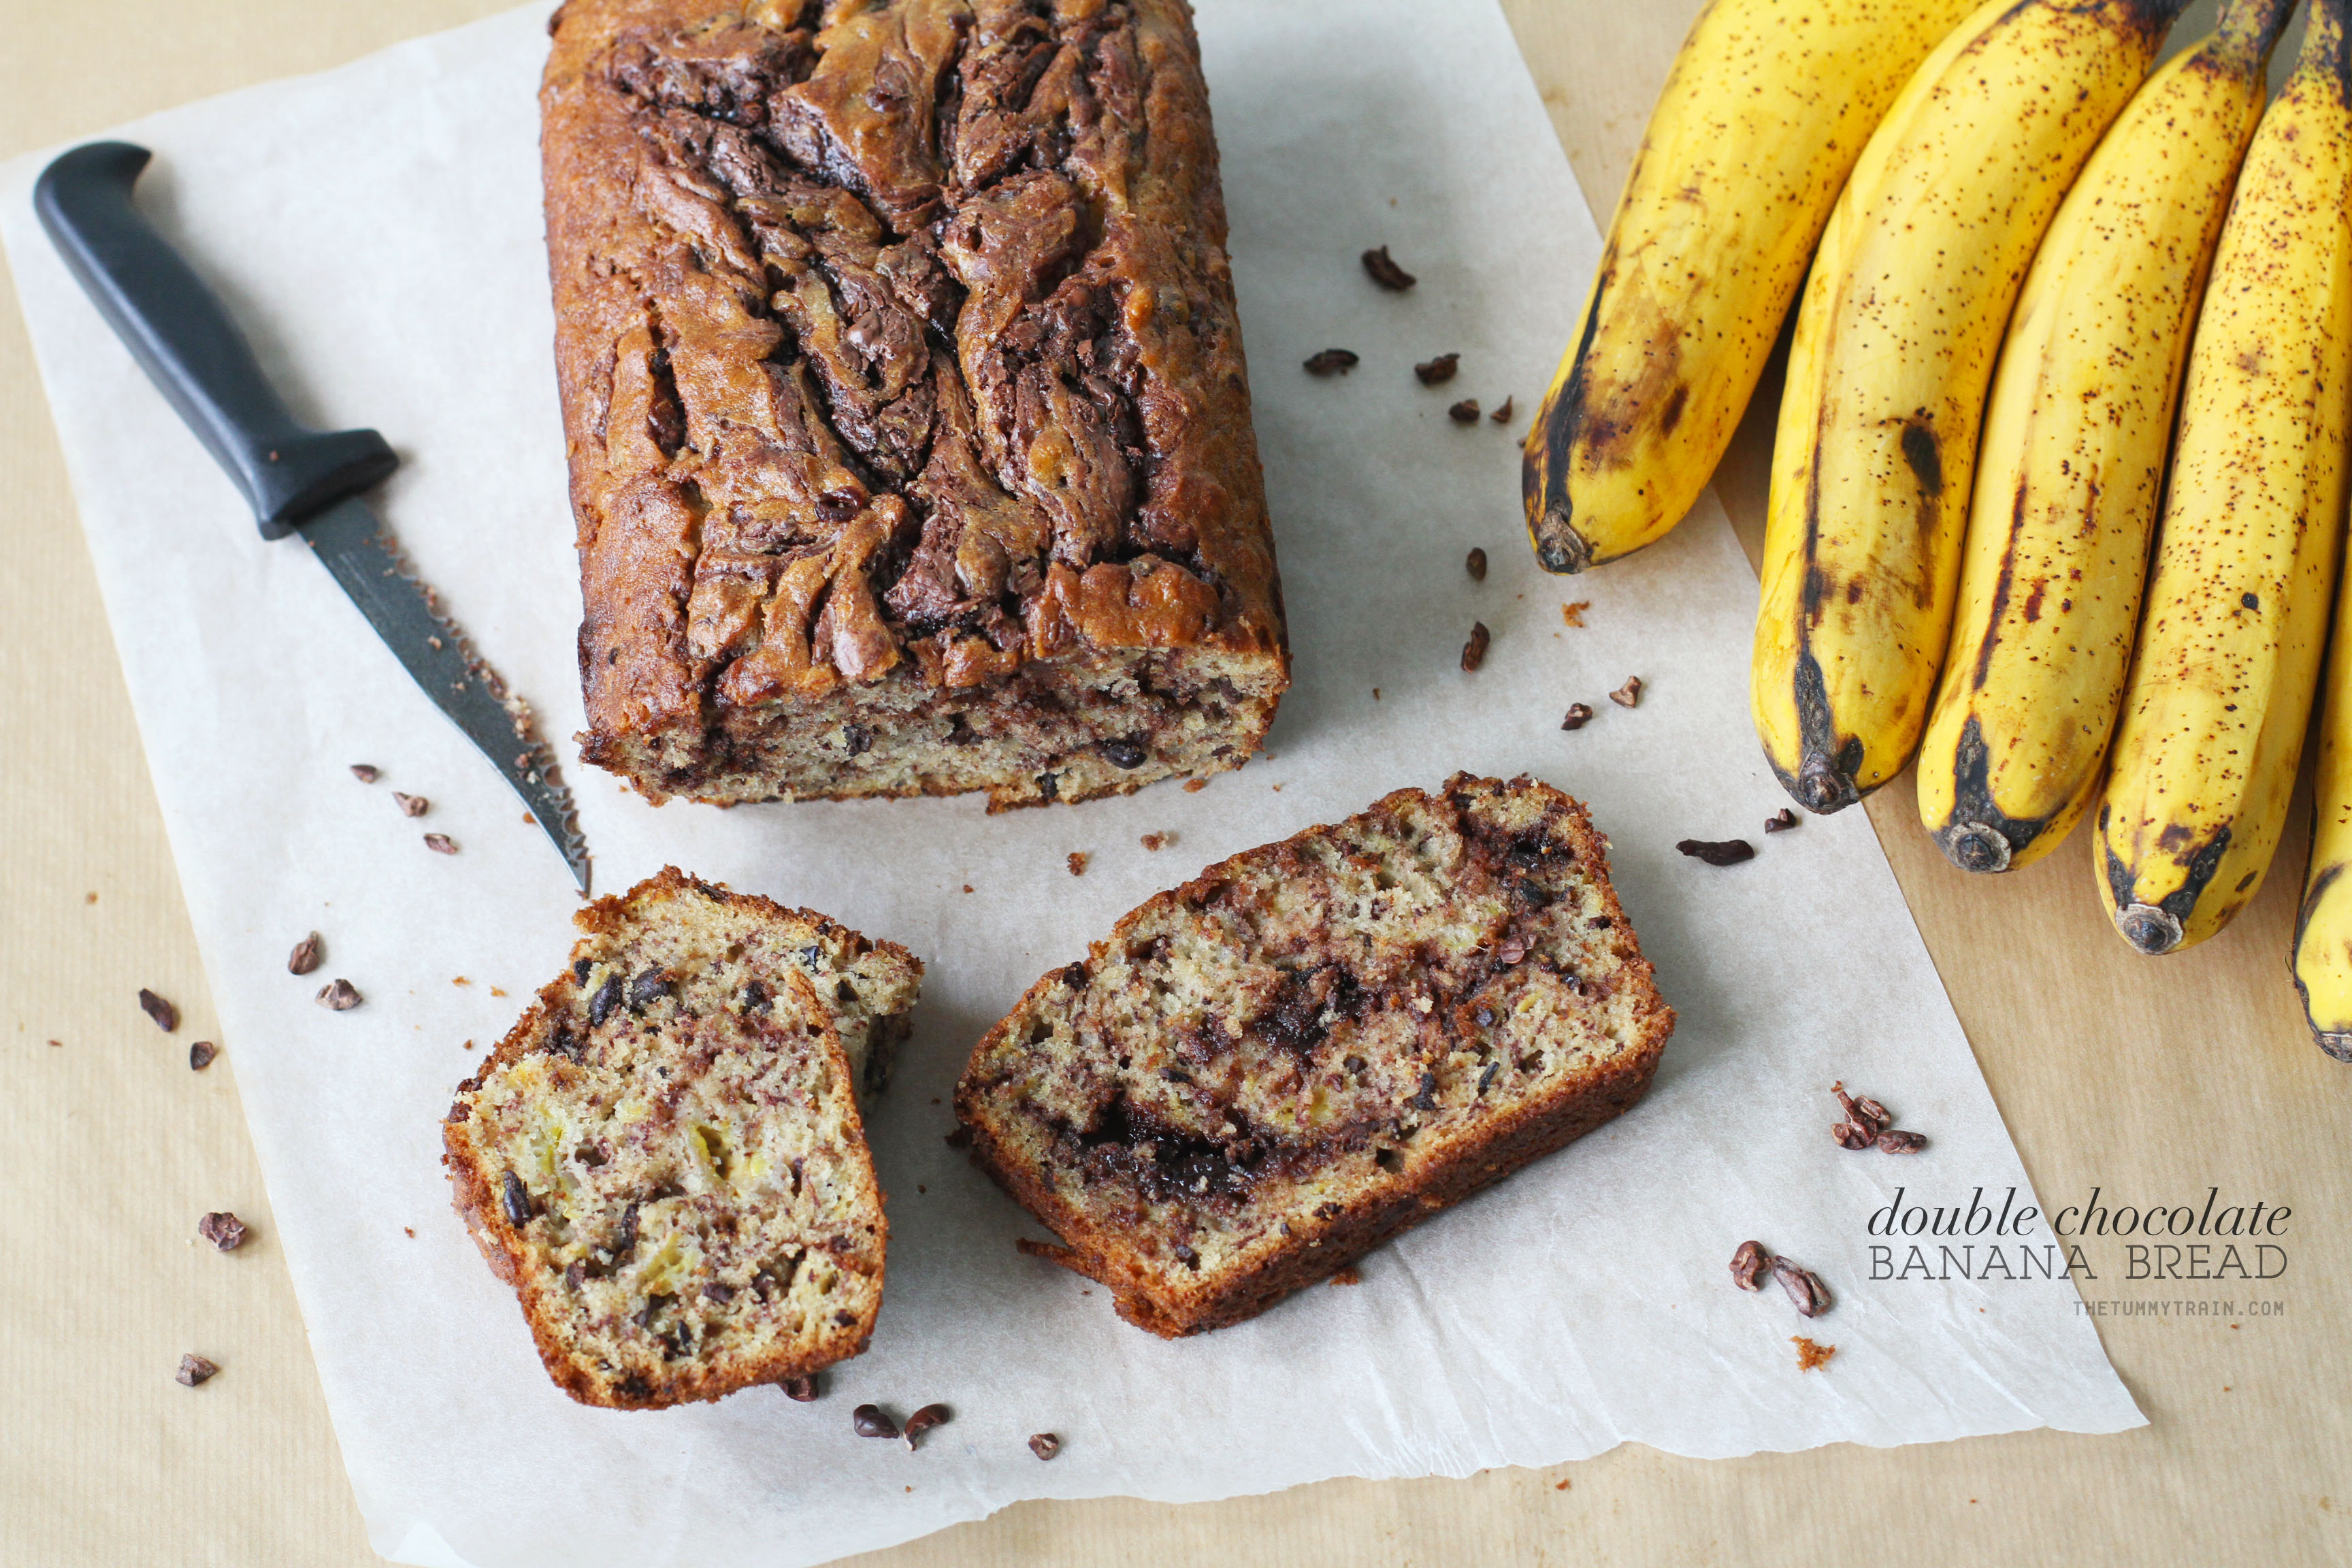 Double Choco Banana Bread 1 - Double trouble with this particular variation of a Chocolate Banana Bread Recipe